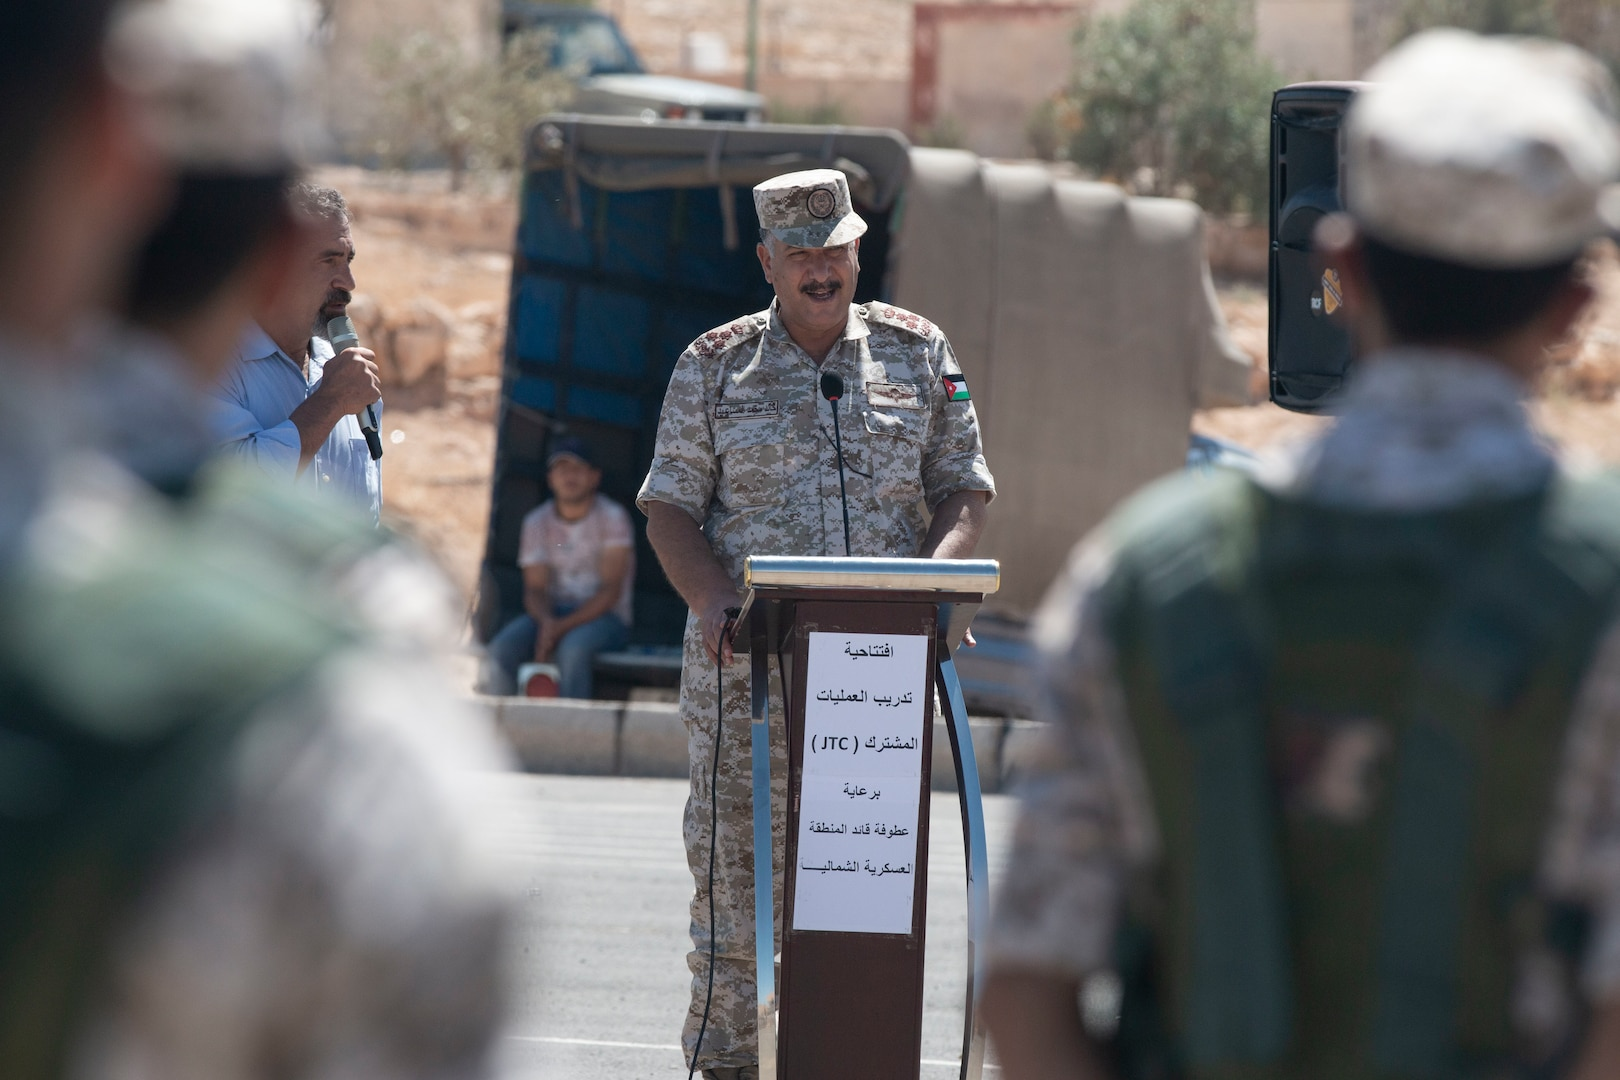 Jordan Armed Forces Brig. Gen. Khalid Al-Masaeid, Northern region commander, speaks to New Jersey National Guard Soldiers, with 1st Squadron, 102nd Calvary Regiment, and Jordan Border Guard Force Soldiers, with the 7th Mechanized Battalion, 48th Mechanized Brigade, during the Jordan Operational Engagement Program (JOEP) opening ceremony July 14, 2019. JOEP is a 14-week individual and collective training, as well as a military partnership between Jordan and America.